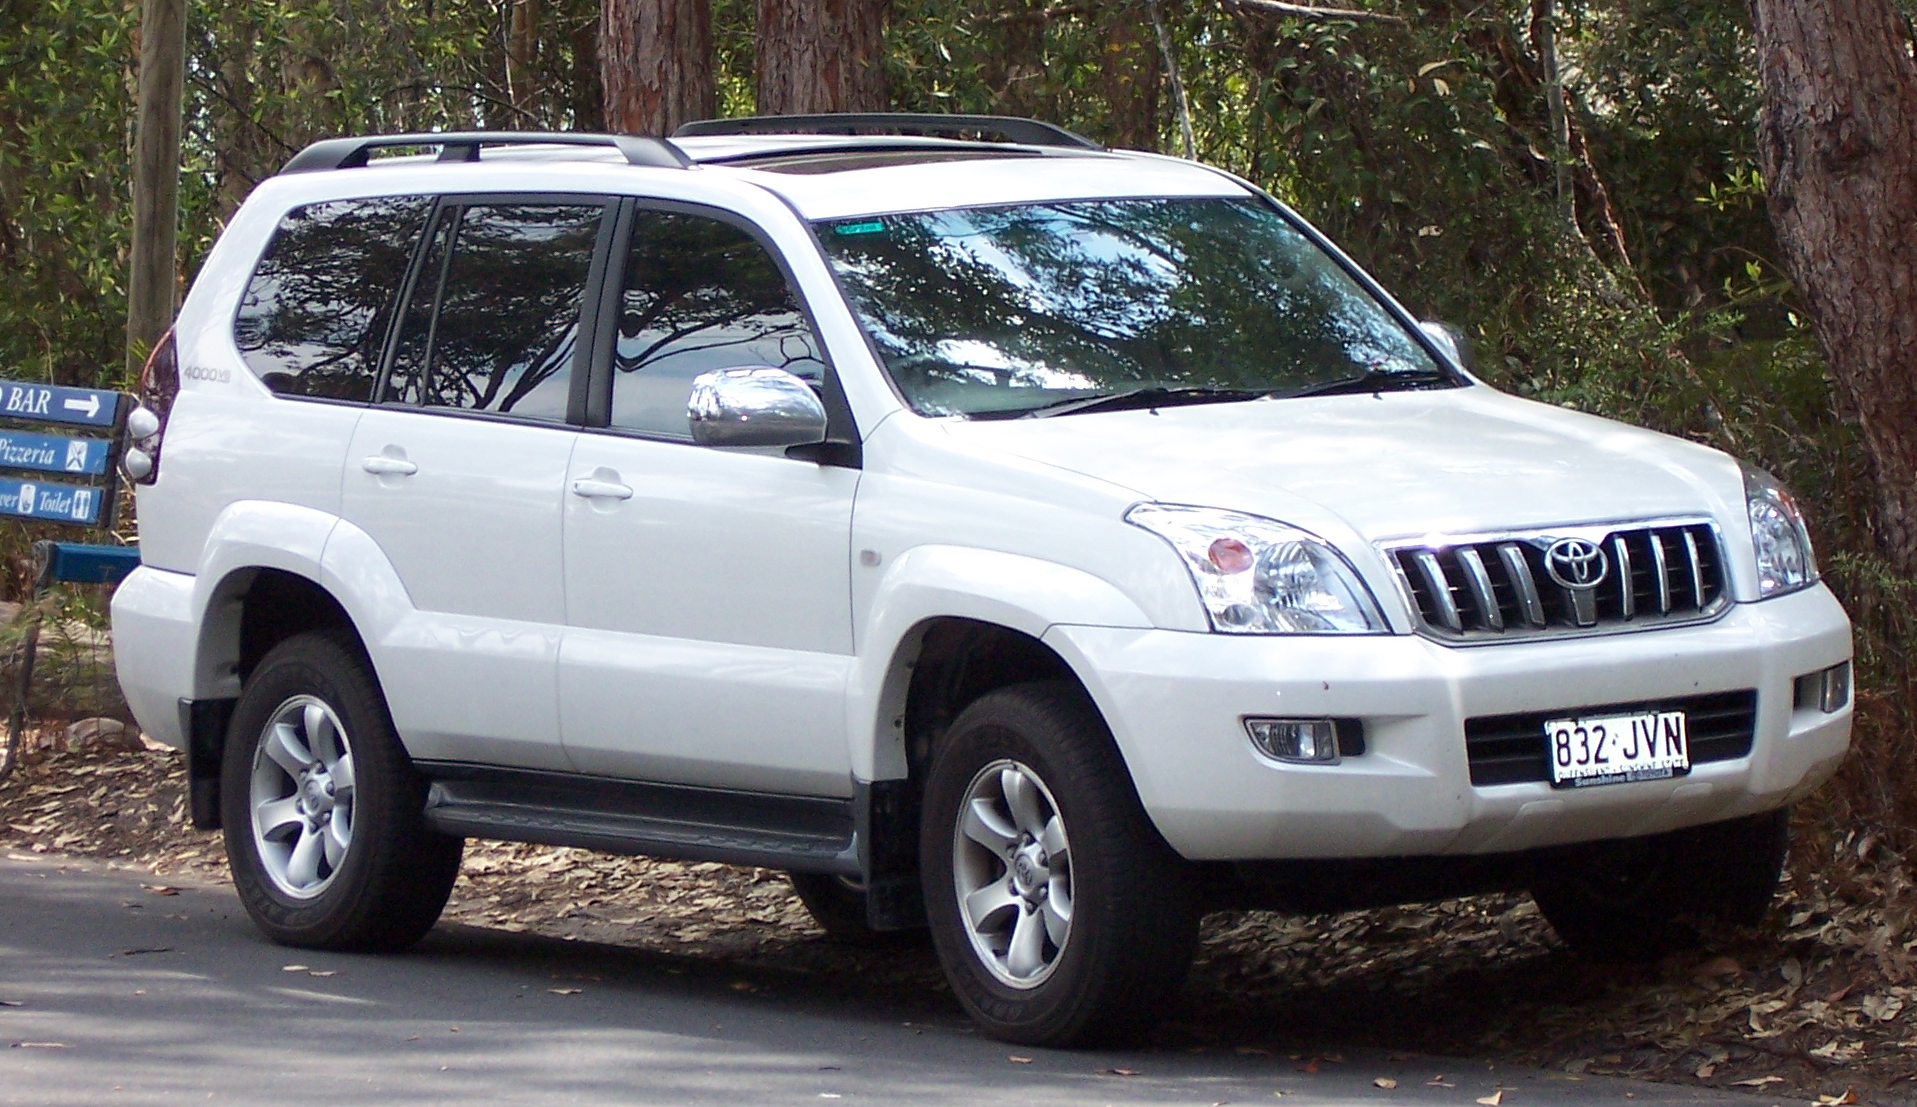 File:2003-2007 Toyota Land Cruiser Prado (GRJ120R) 02.jpg - Wikimedia Commons